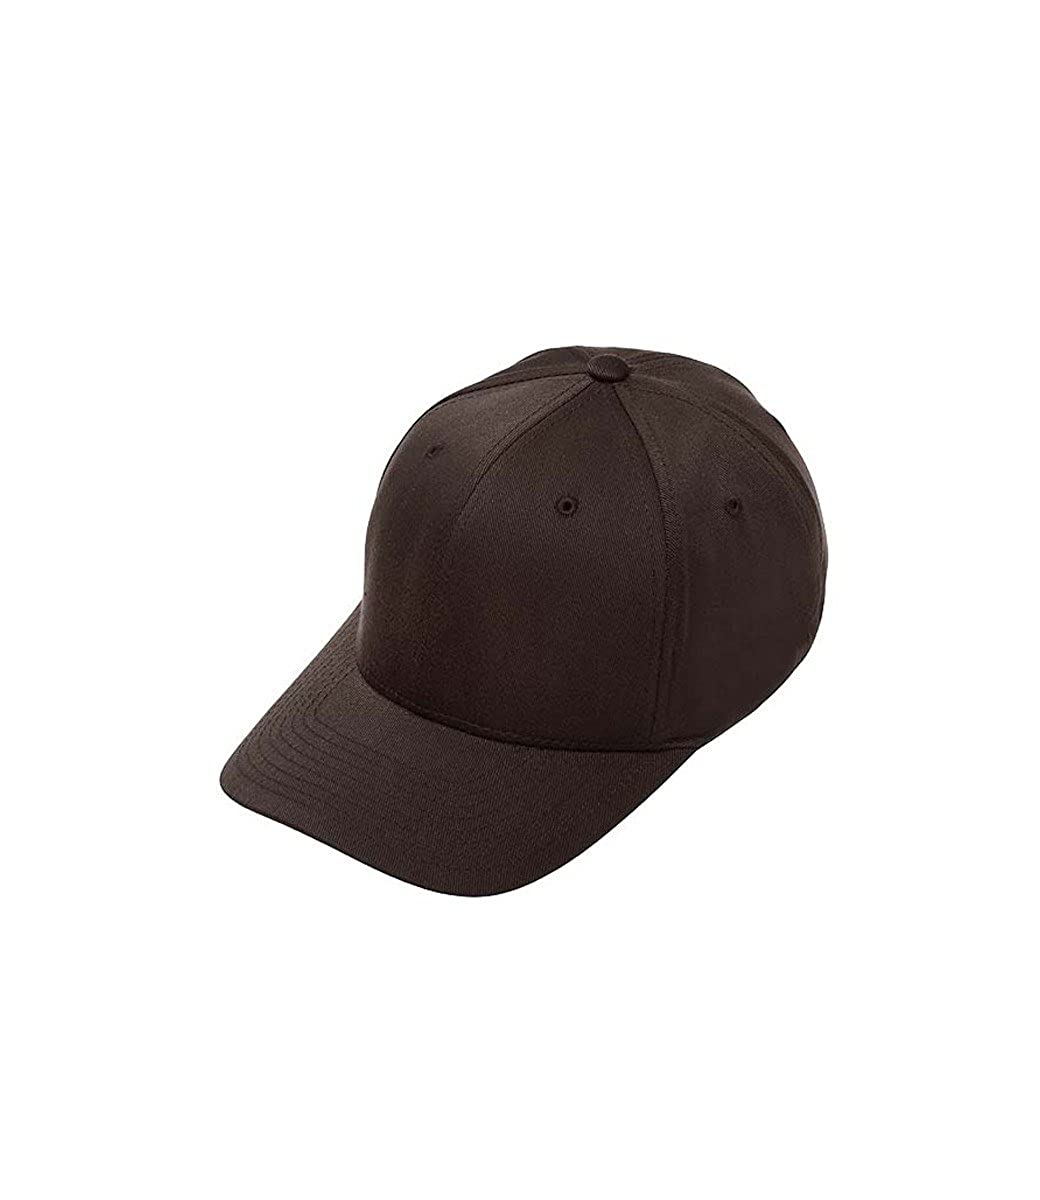 Flexfit Black Wooly Combed Stretchable Fitted Cap Kappe Baseballcap Basecap 6277